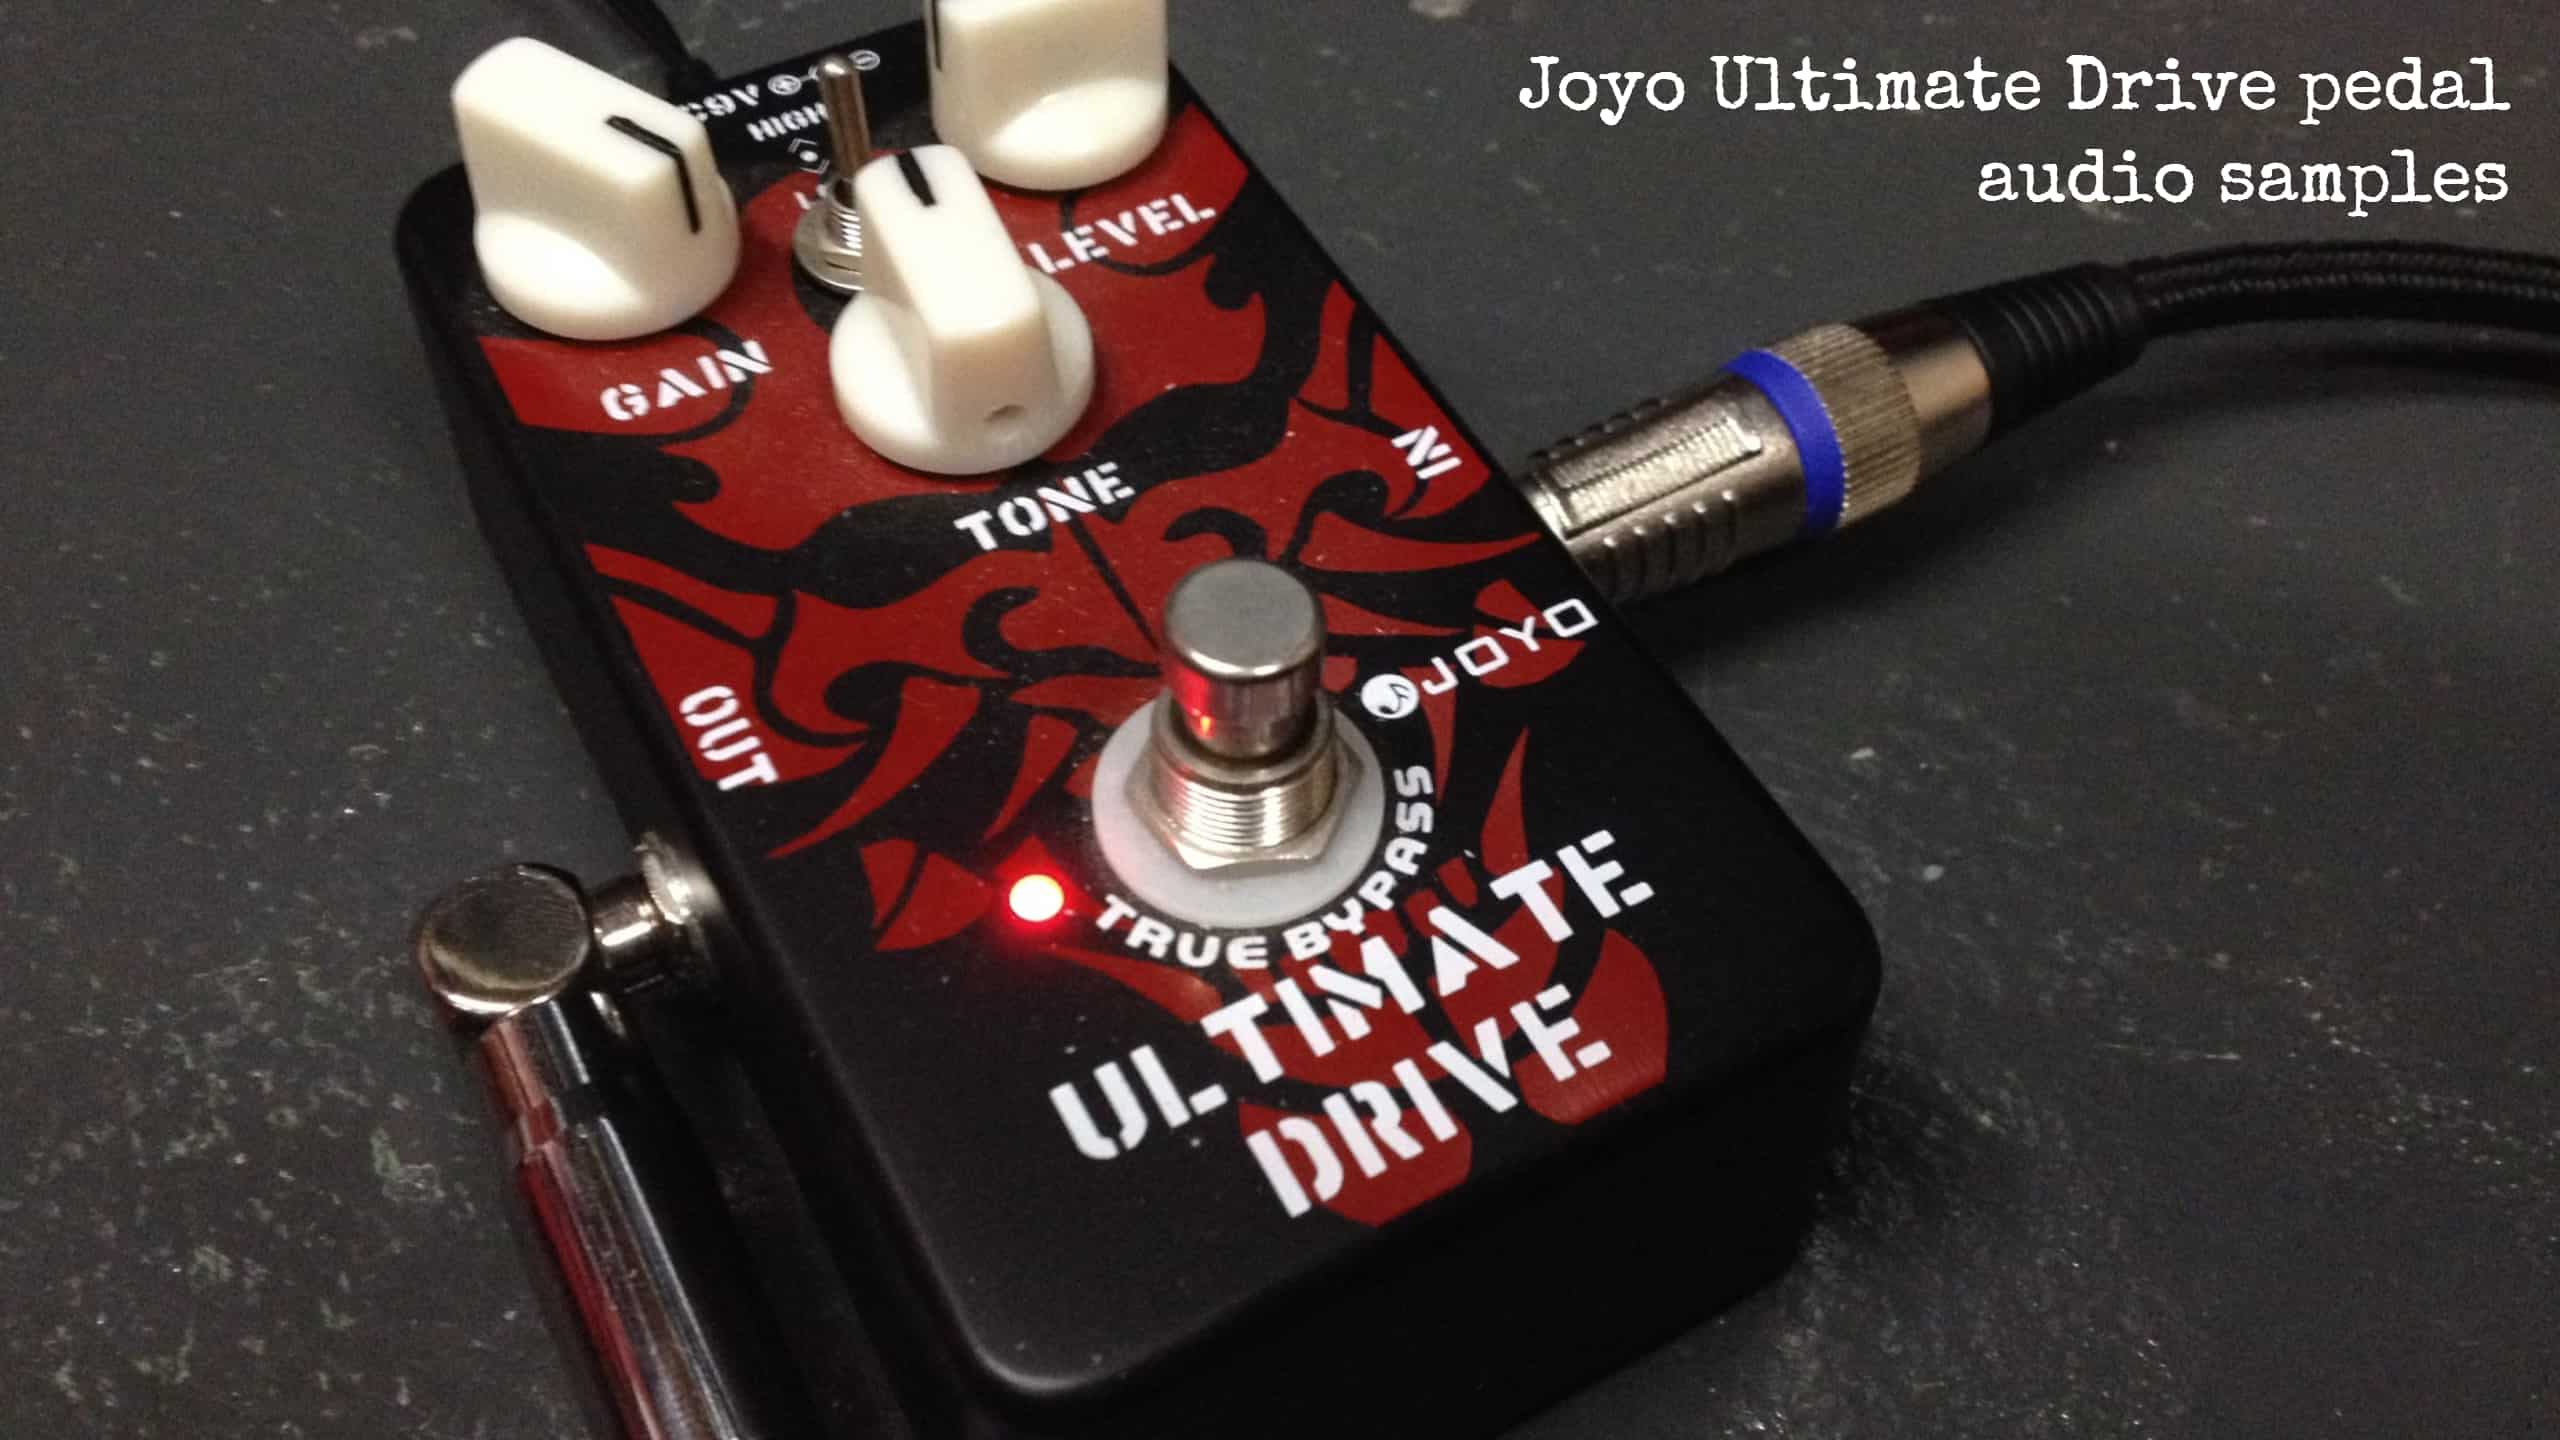 Joyo Ultimate Drive pedal